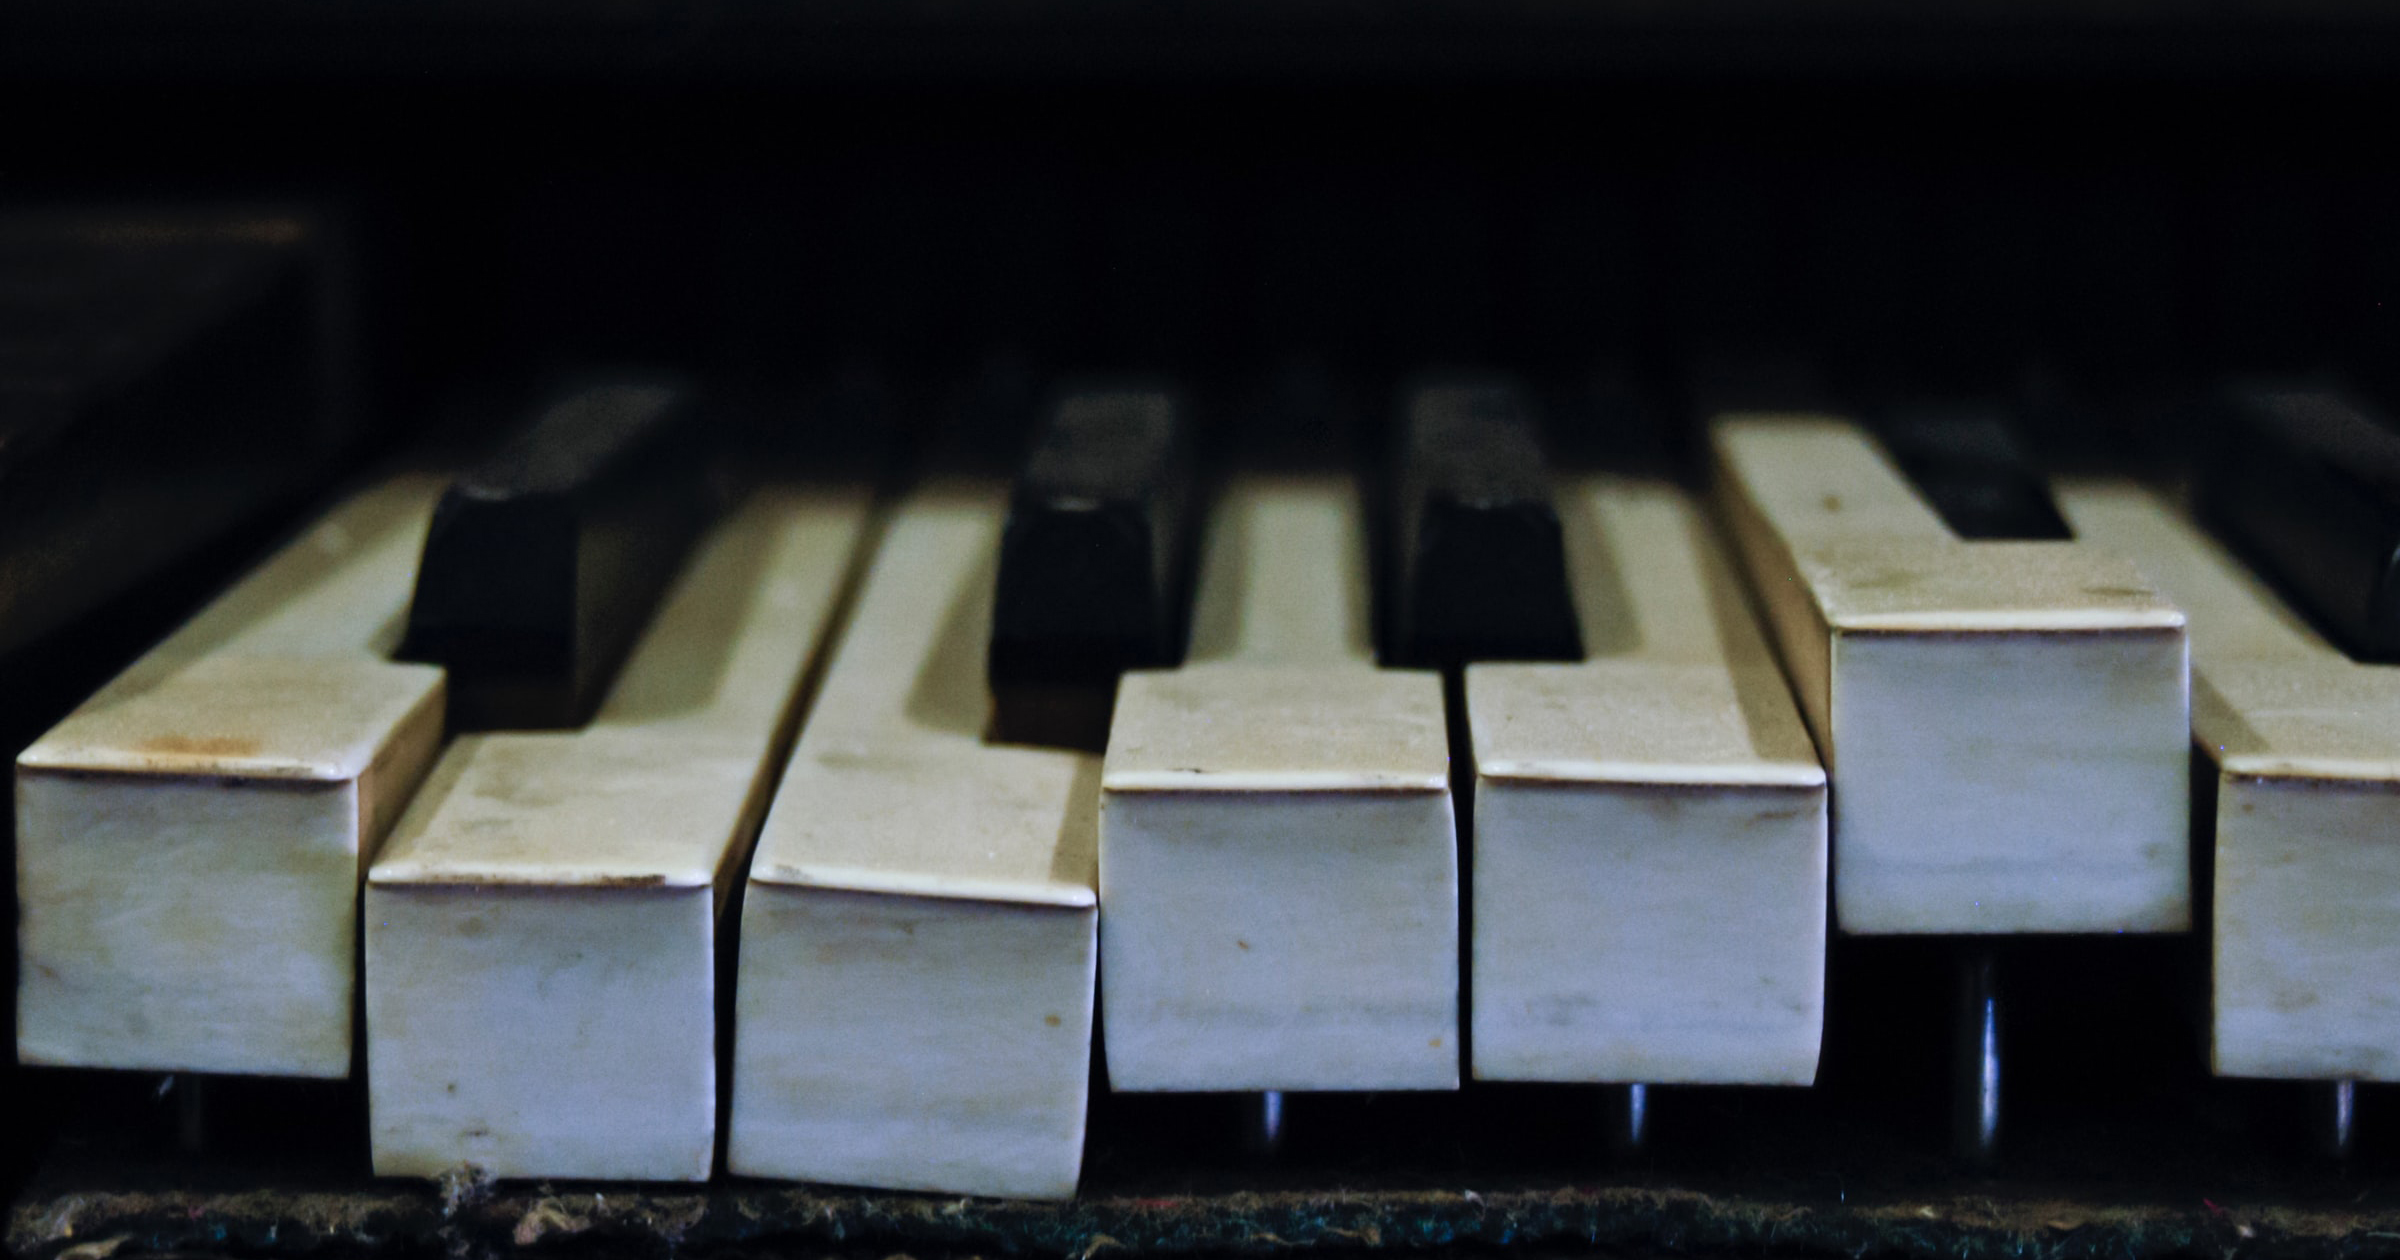 A close up of a piano keyboard with broken/warped keys going in various directions.